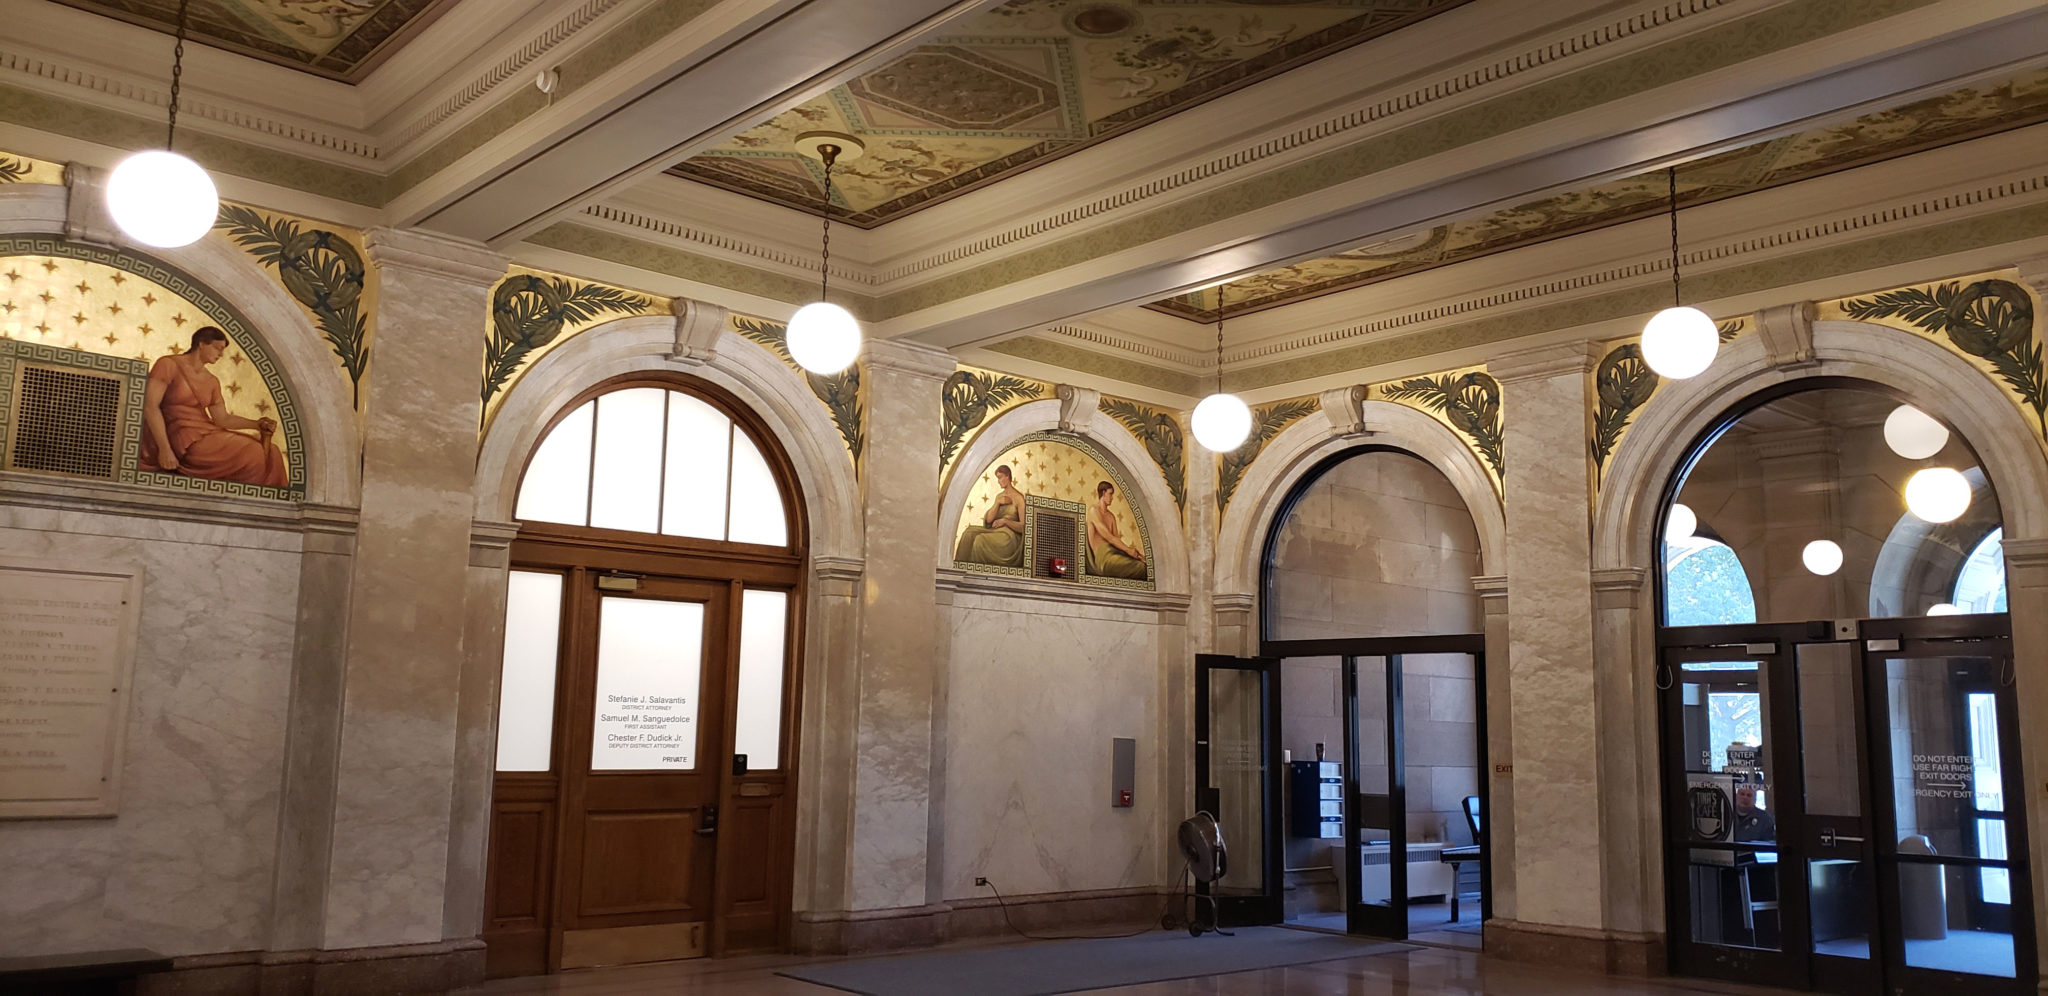 Luzerne County Courthouse Rotunda Restoration - Phase I